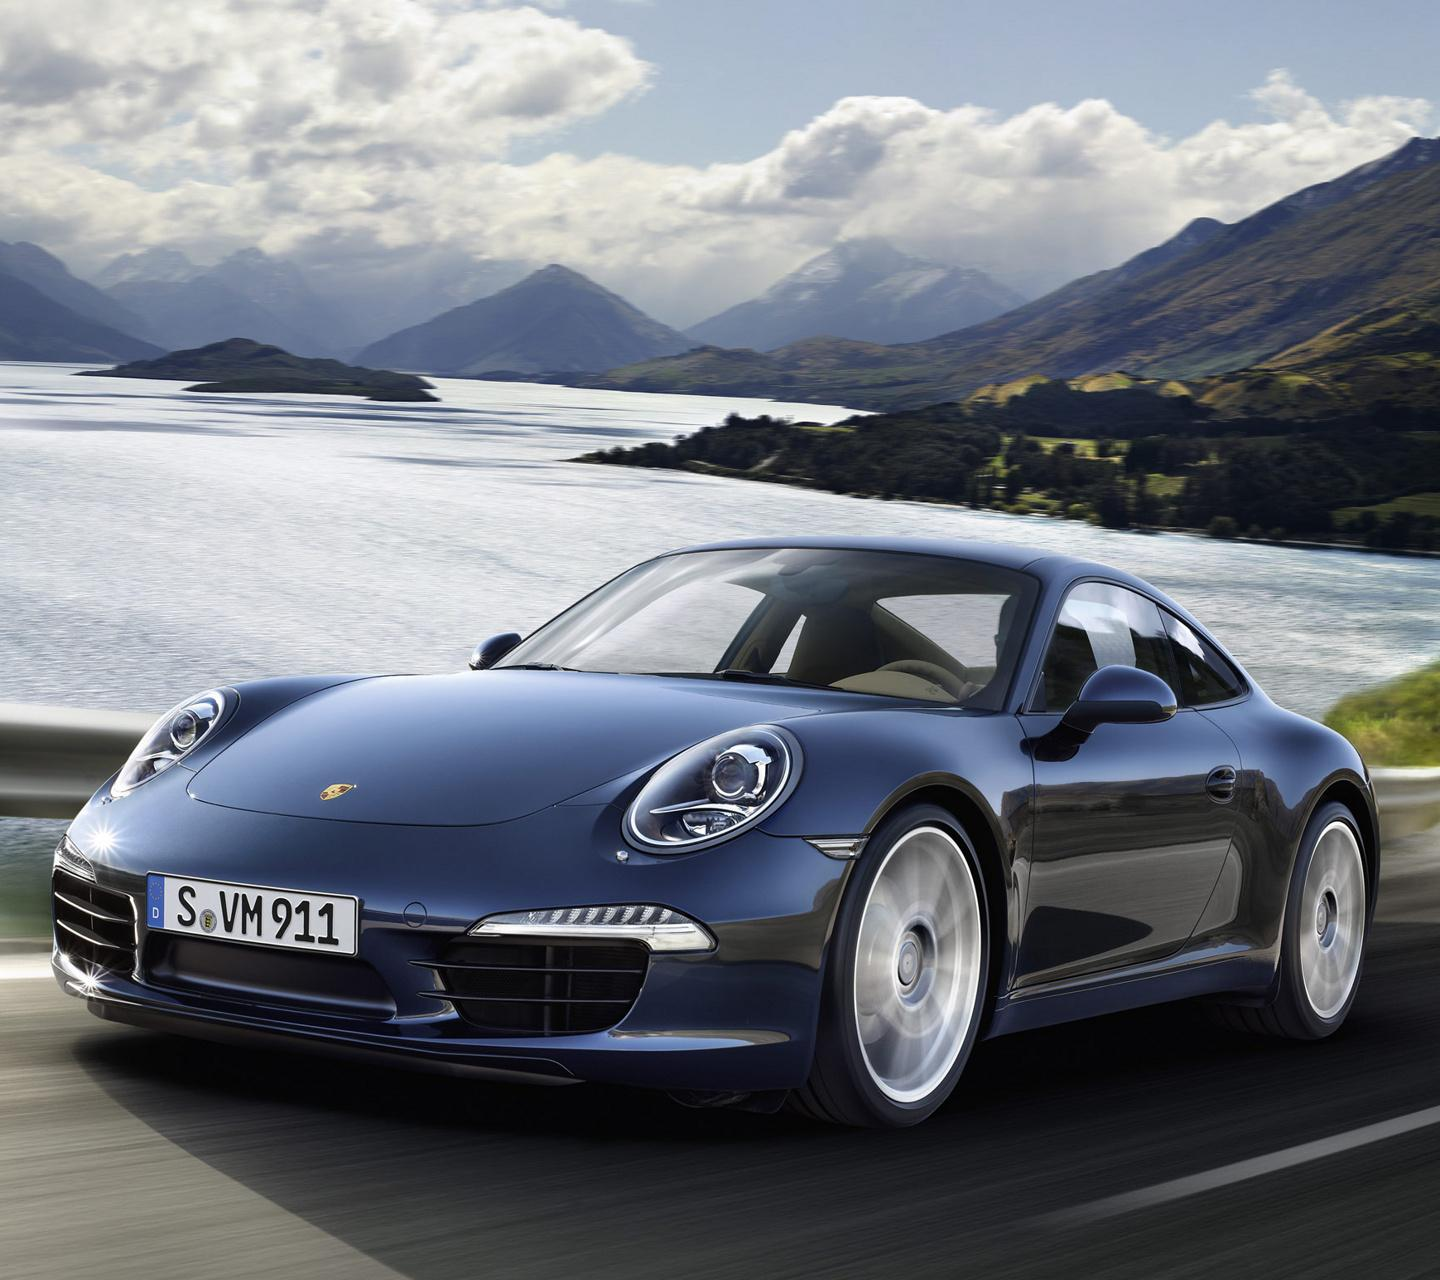 Porsche 911 Carrera Blue Sport Car HD Wallpaper PC